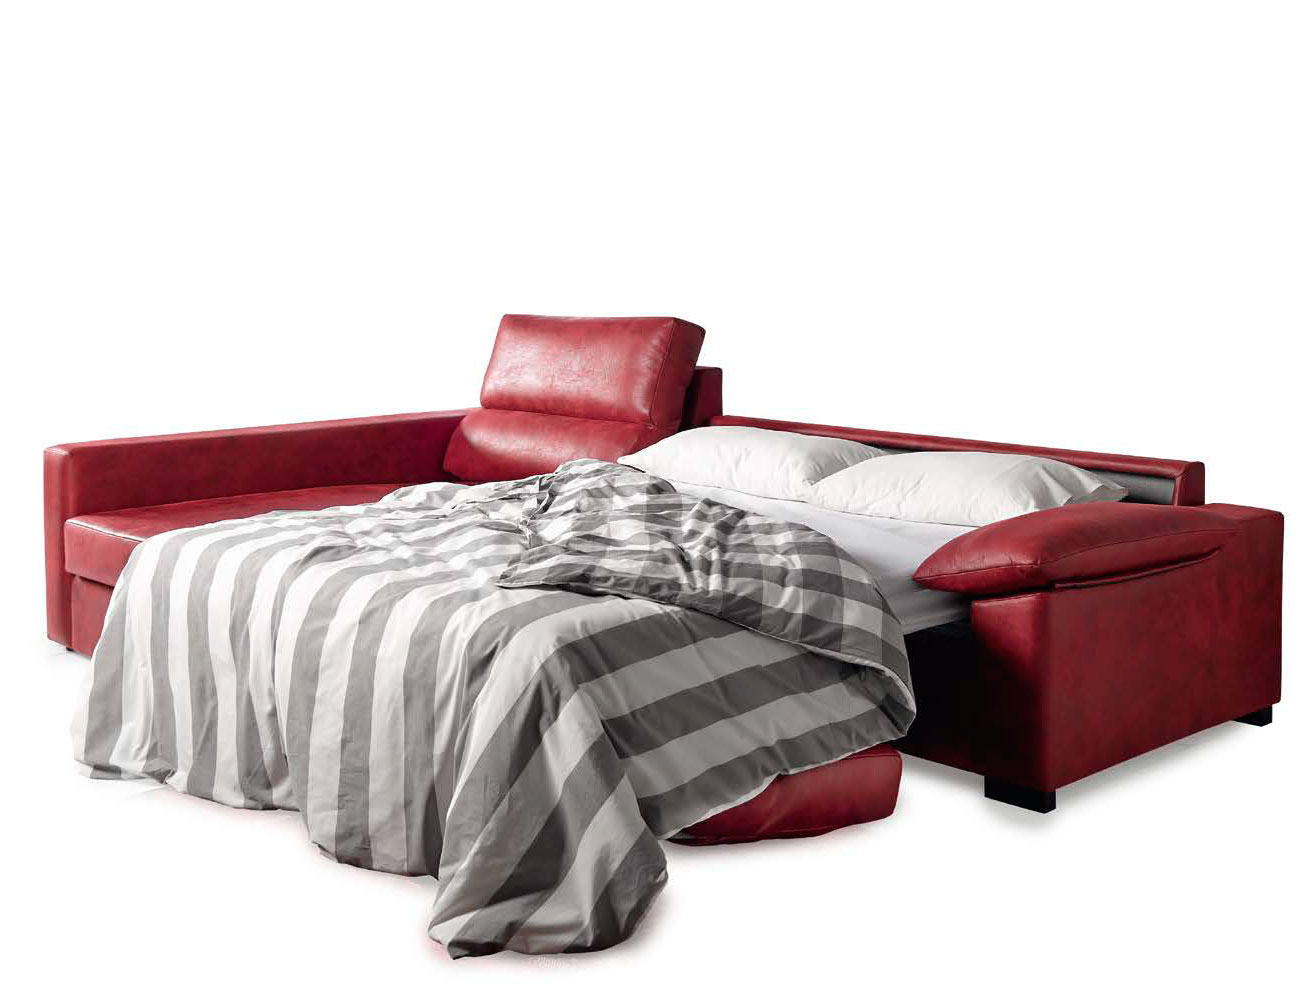 Sofa chaiselongue cama italiana leire rojo 2